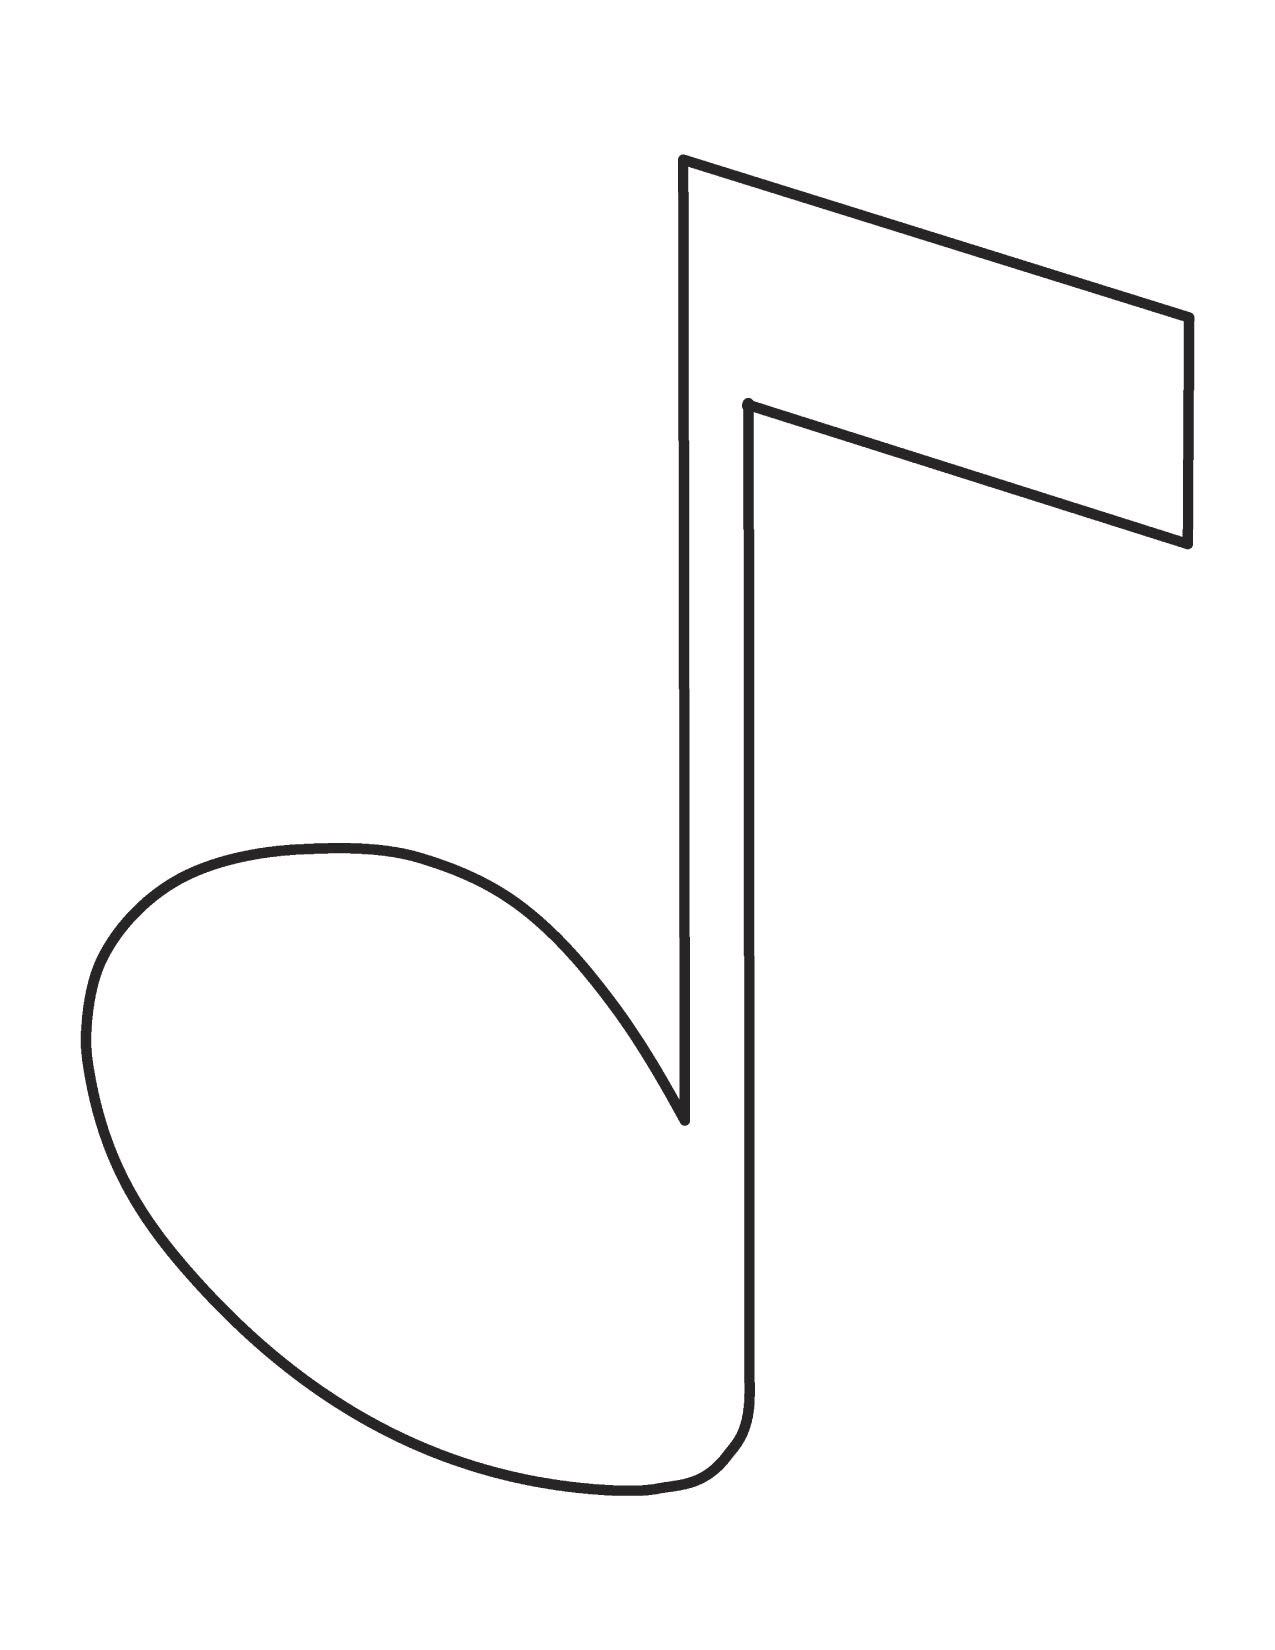 Modest image intended for printable music note